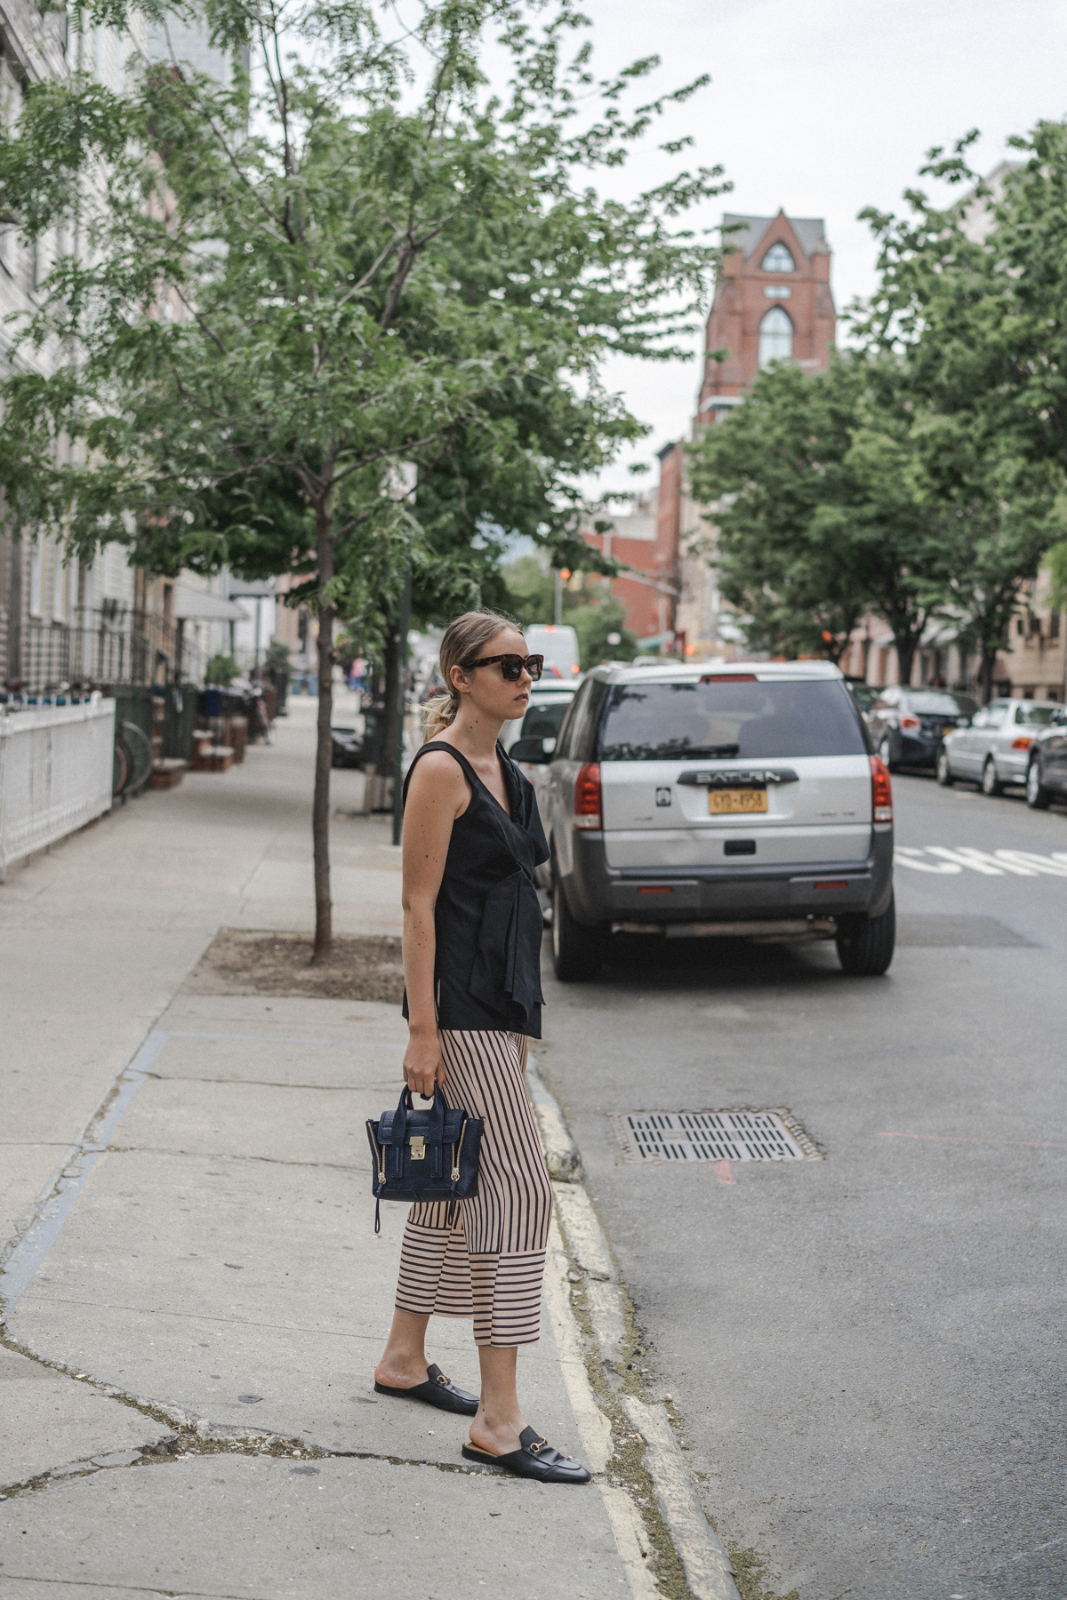 The-Limits-of-Control-Fashion-Fashionblogger-Blogger-Berlin-Deutschland-Modeblog-Modeblogger-Avenue32_Victoria_Beckham_New York_2